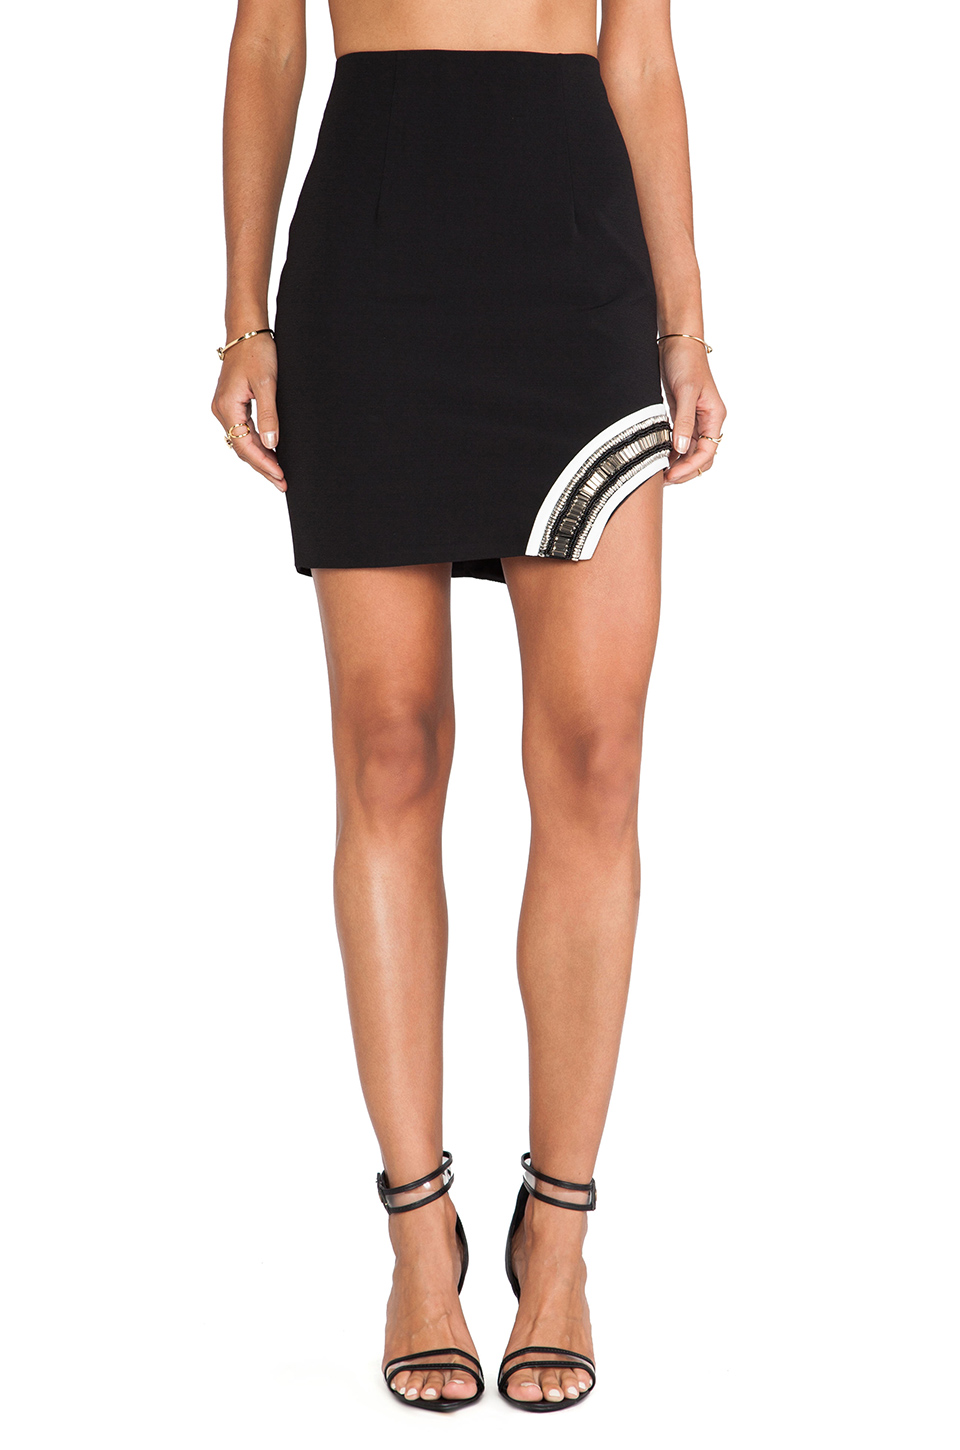 Lumier The Path Of Glory Mini Skirt in Black & White from REVOLVEclothing.com